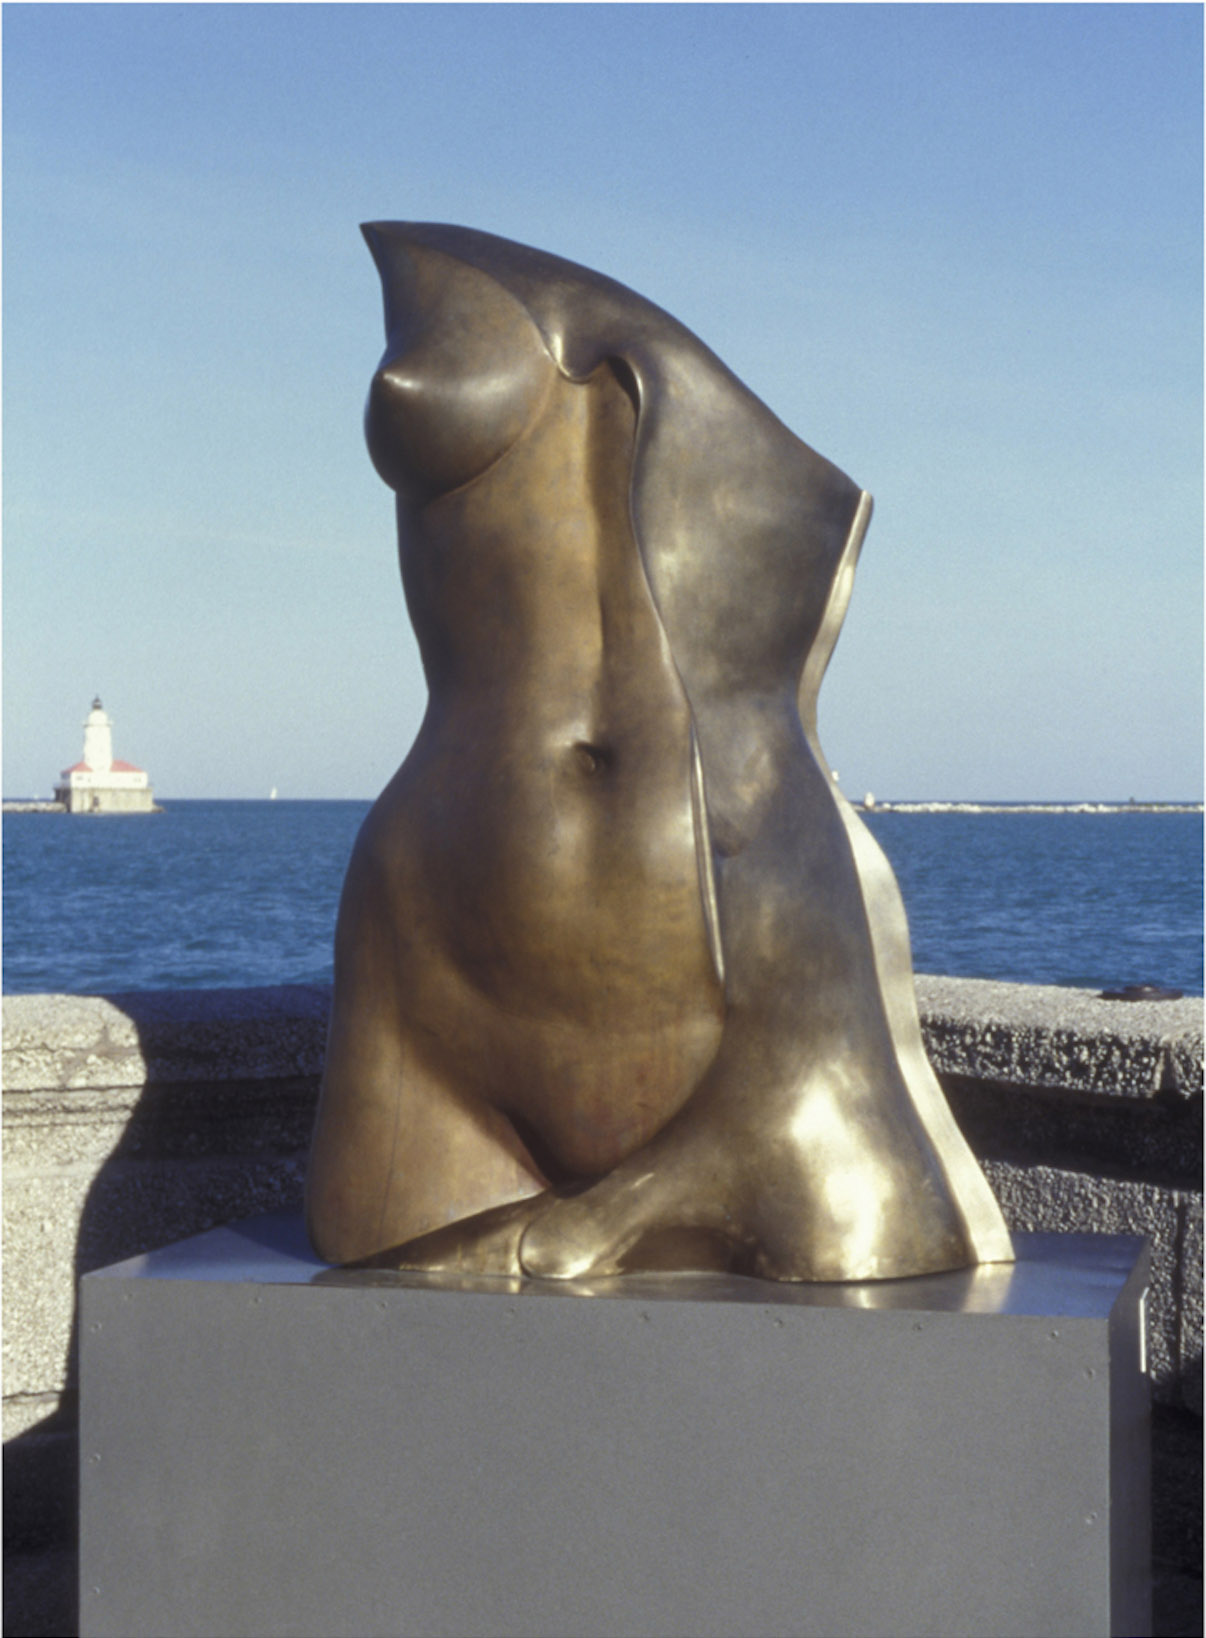 Res - 8' X 4' X 3' in cast bronze (1999)at Navy Pier in Chicago, IL